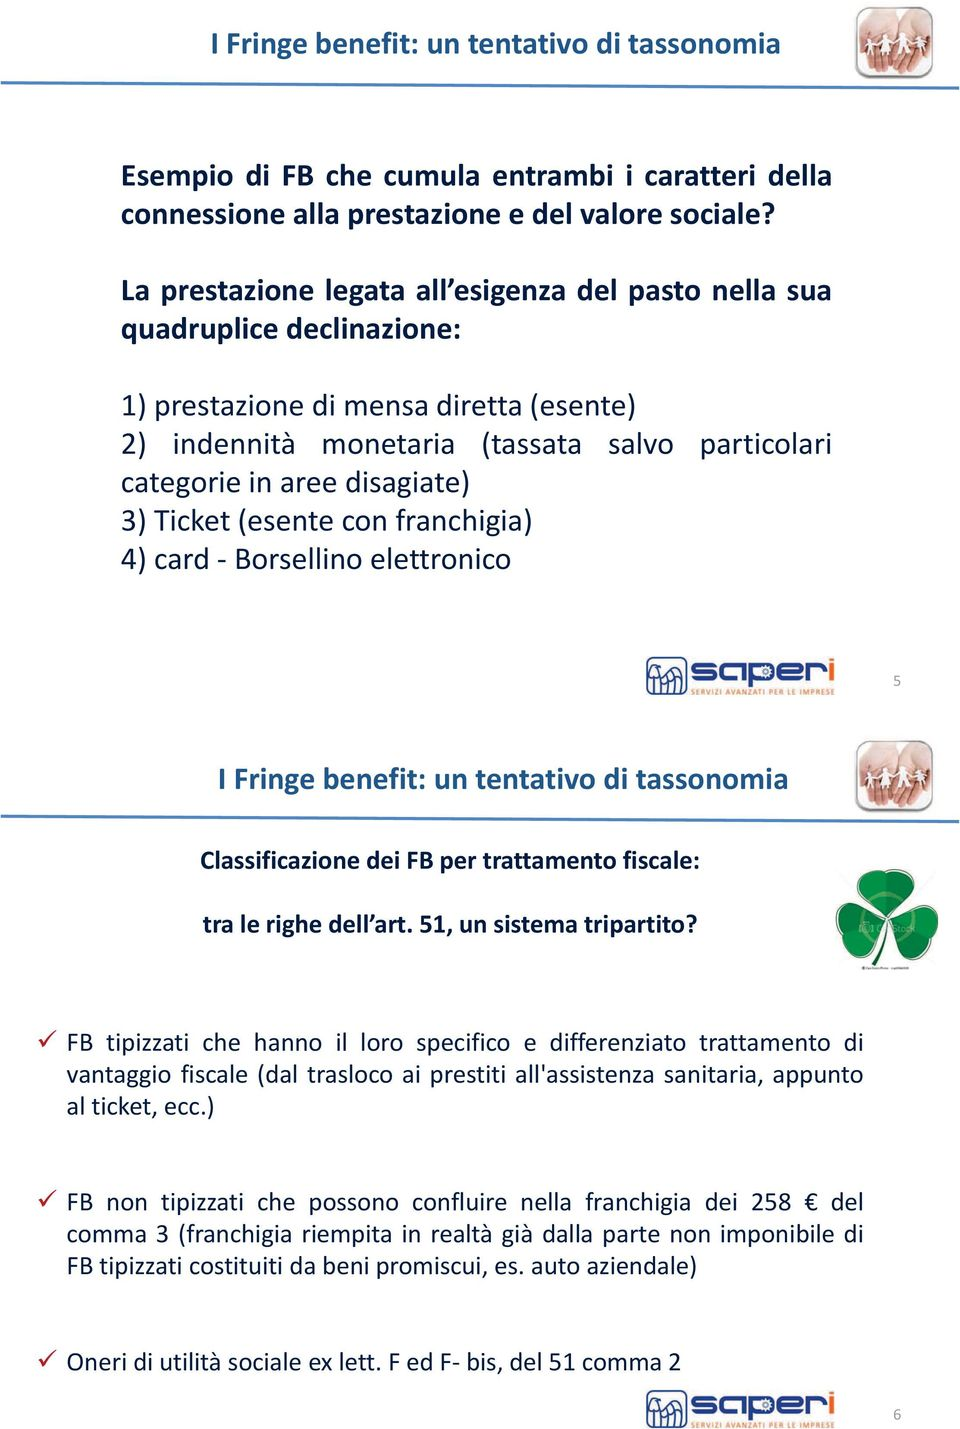 disagiate) 3) Ticket (esente con franchigia) 4) card - Borsellino elettronico 5 I Fringe benefit: un tentativo di tassonomia Classificazione dei FB per trattamento fiscale: tra le righe dell art.